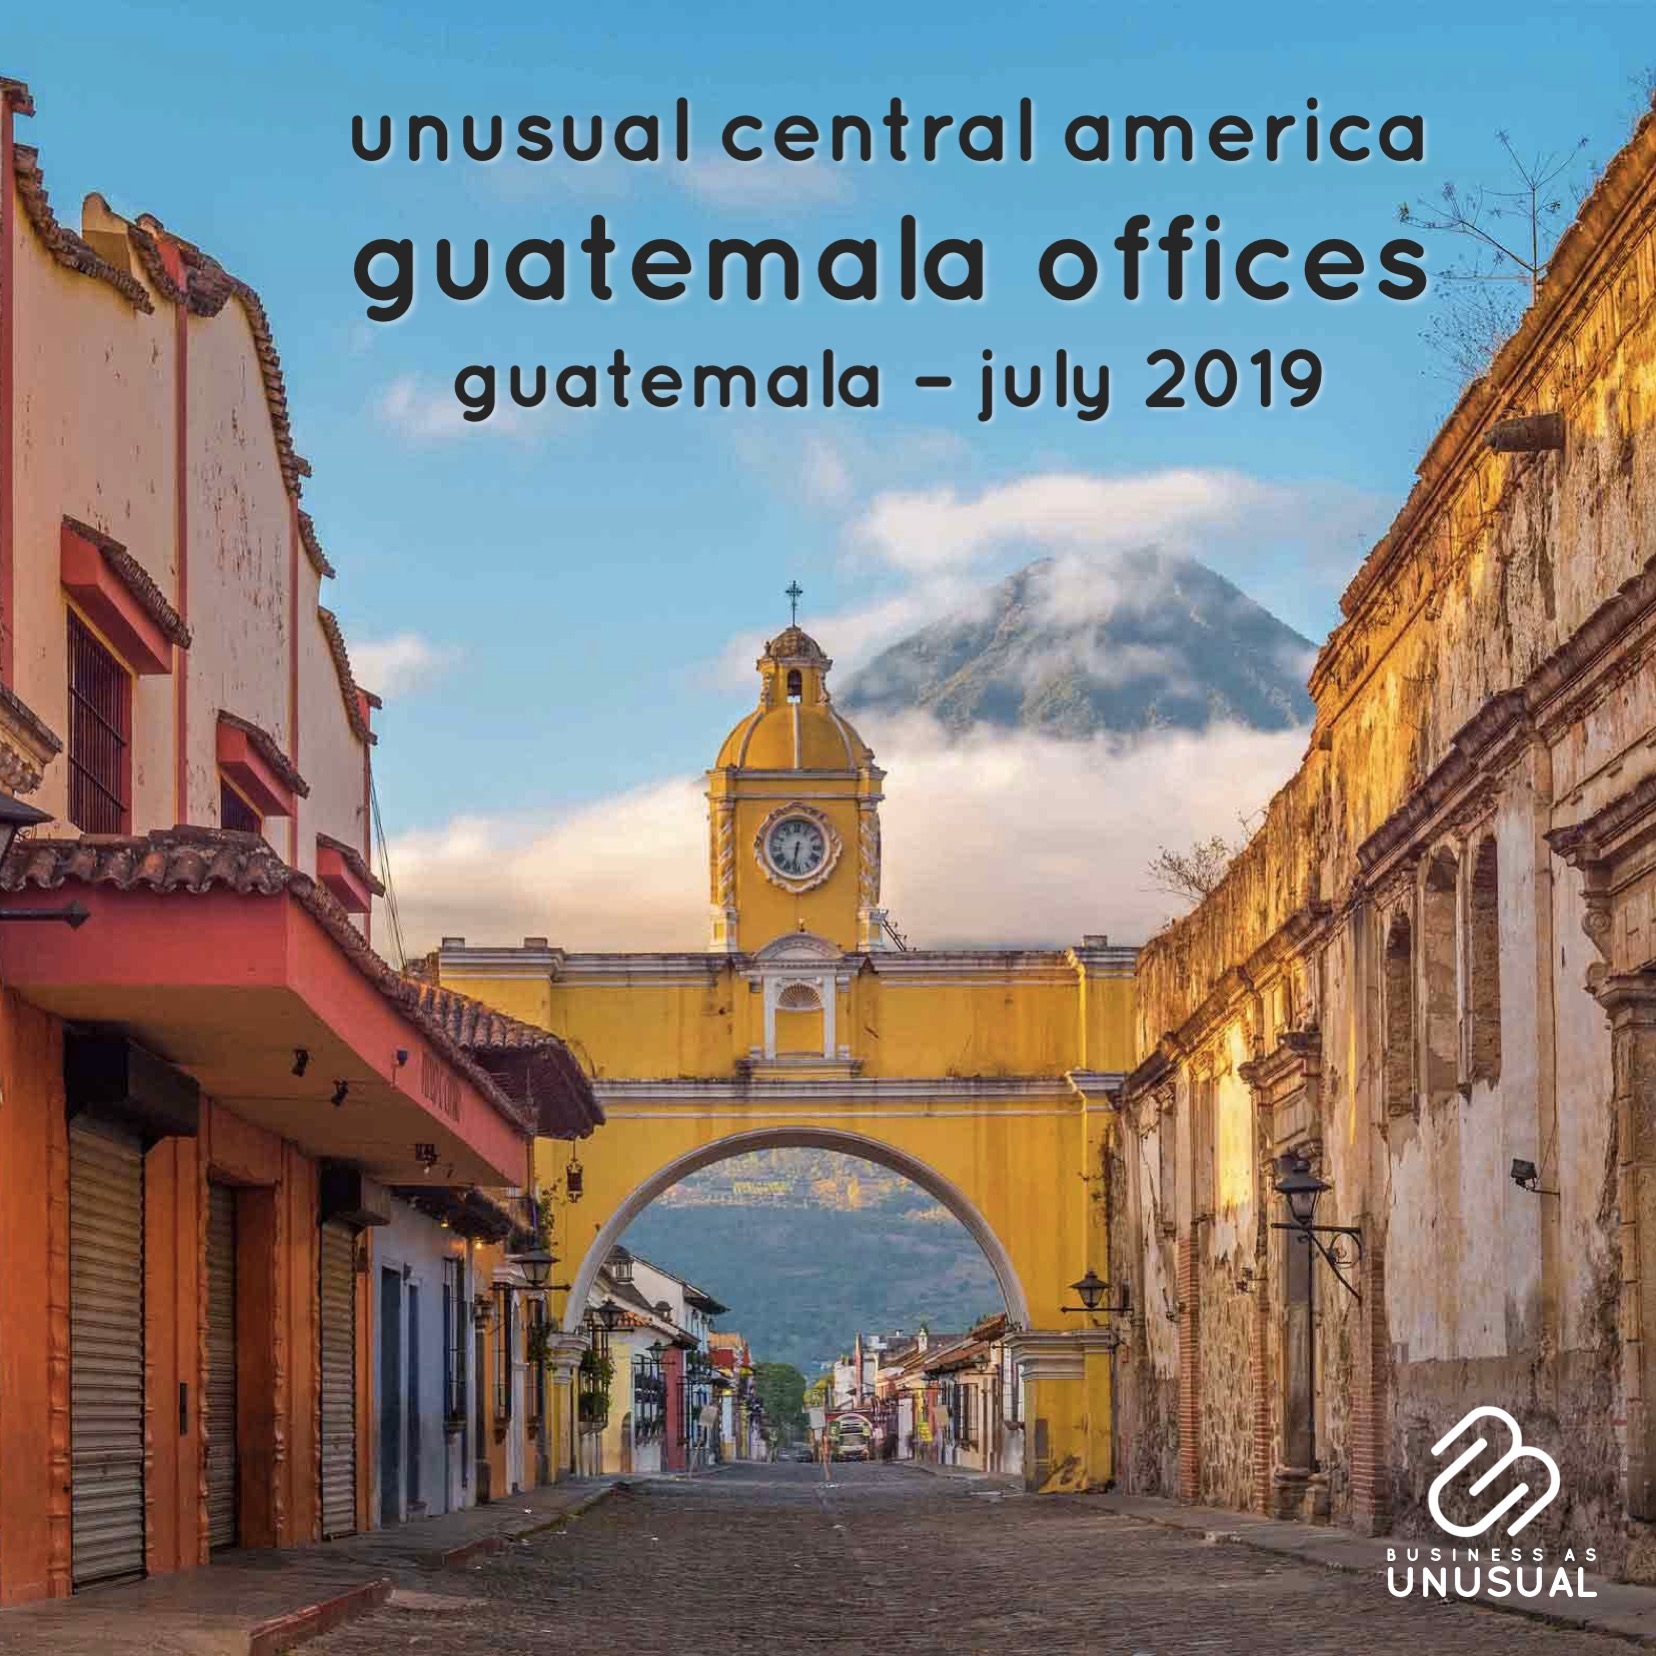 Unusual Central America - Guatemala Offices - Opening July 2019